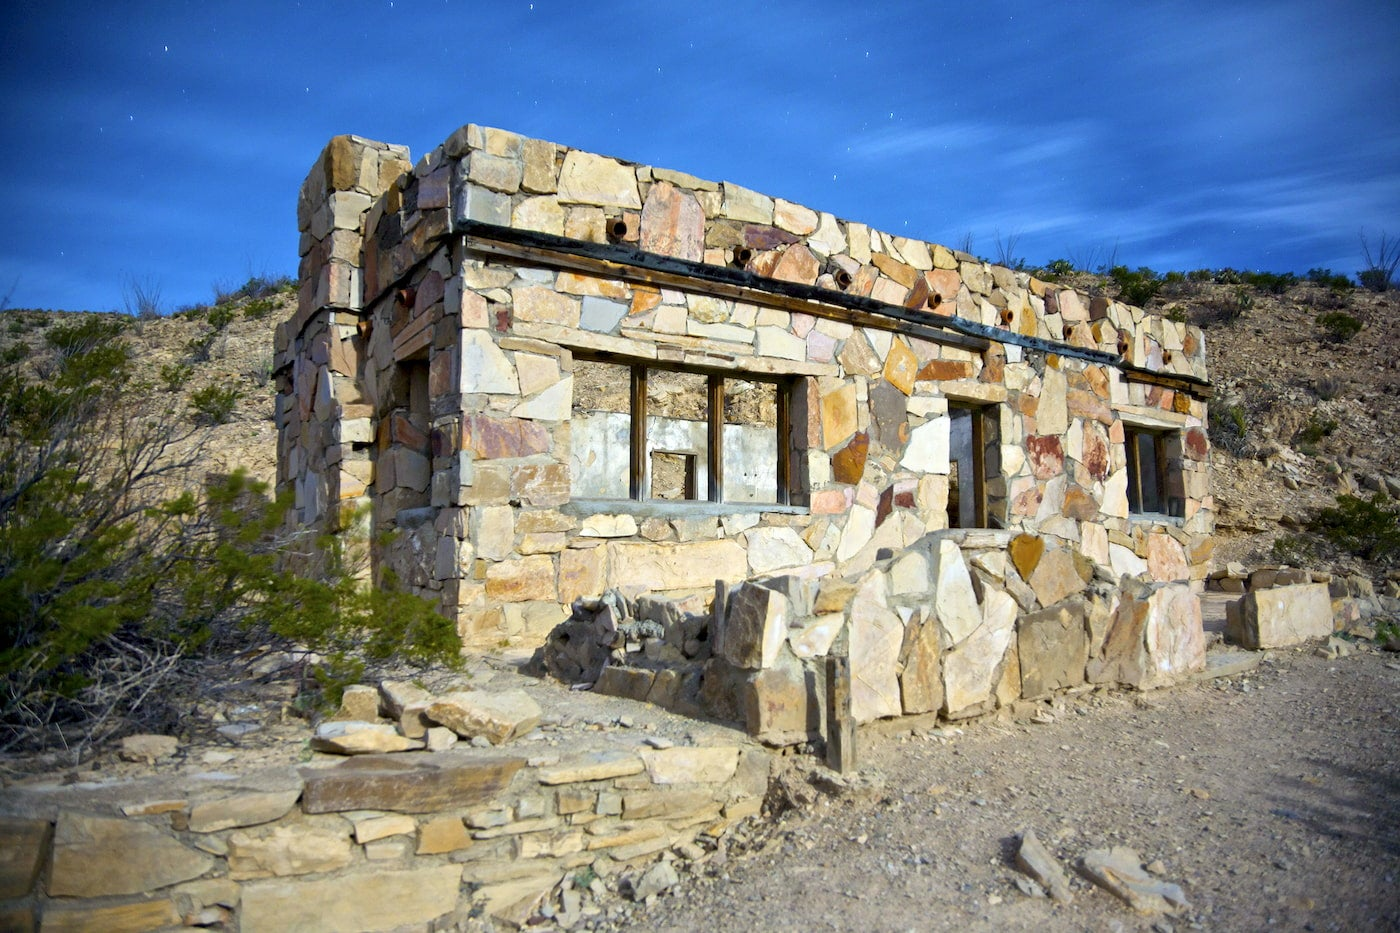 Stone building in the desert with hollow windows.